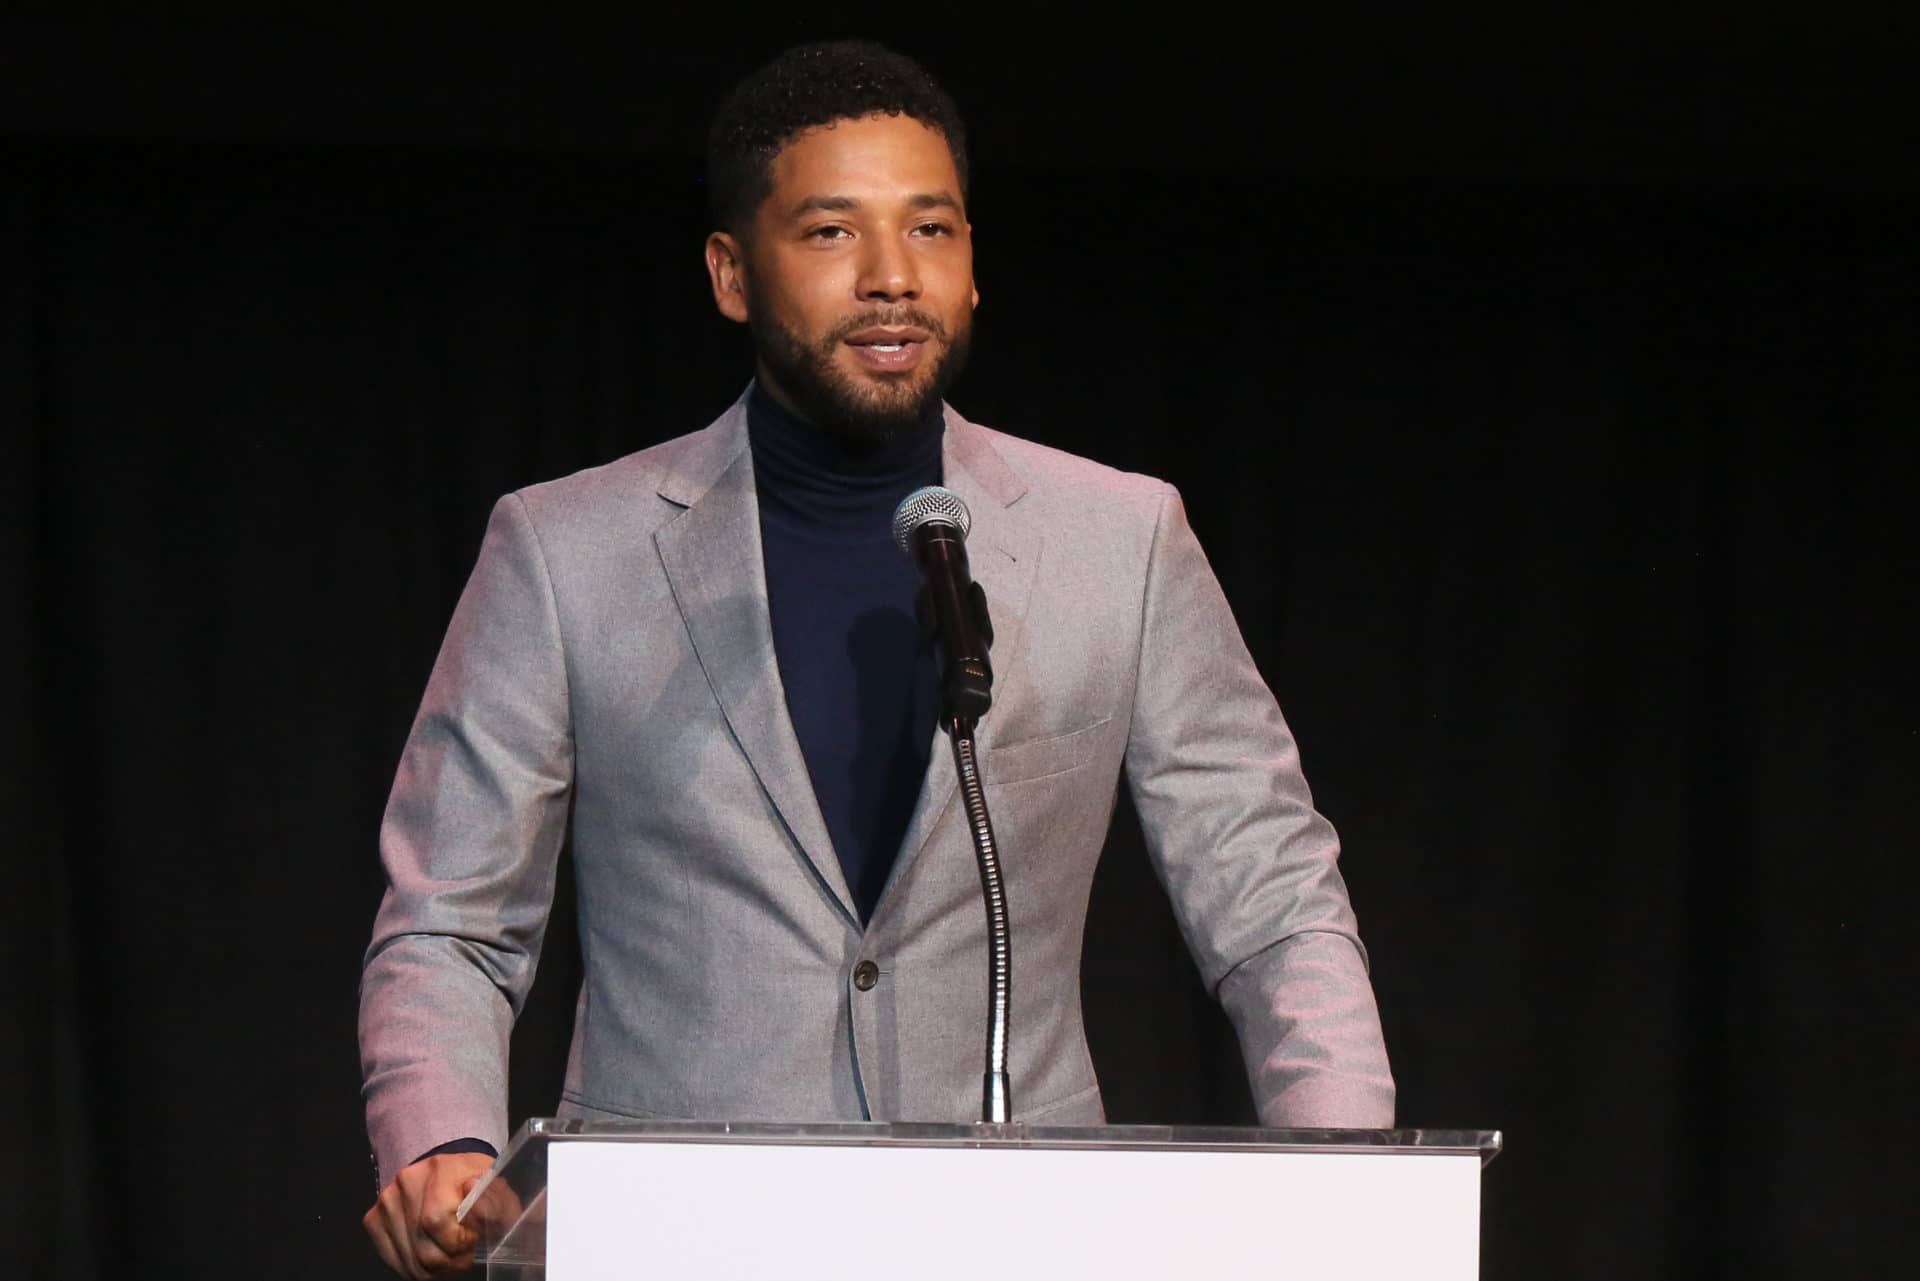 Jussie Smollett Denies That He Orchestrated His Own Attack: 'Nothing Is Further From The Truth'